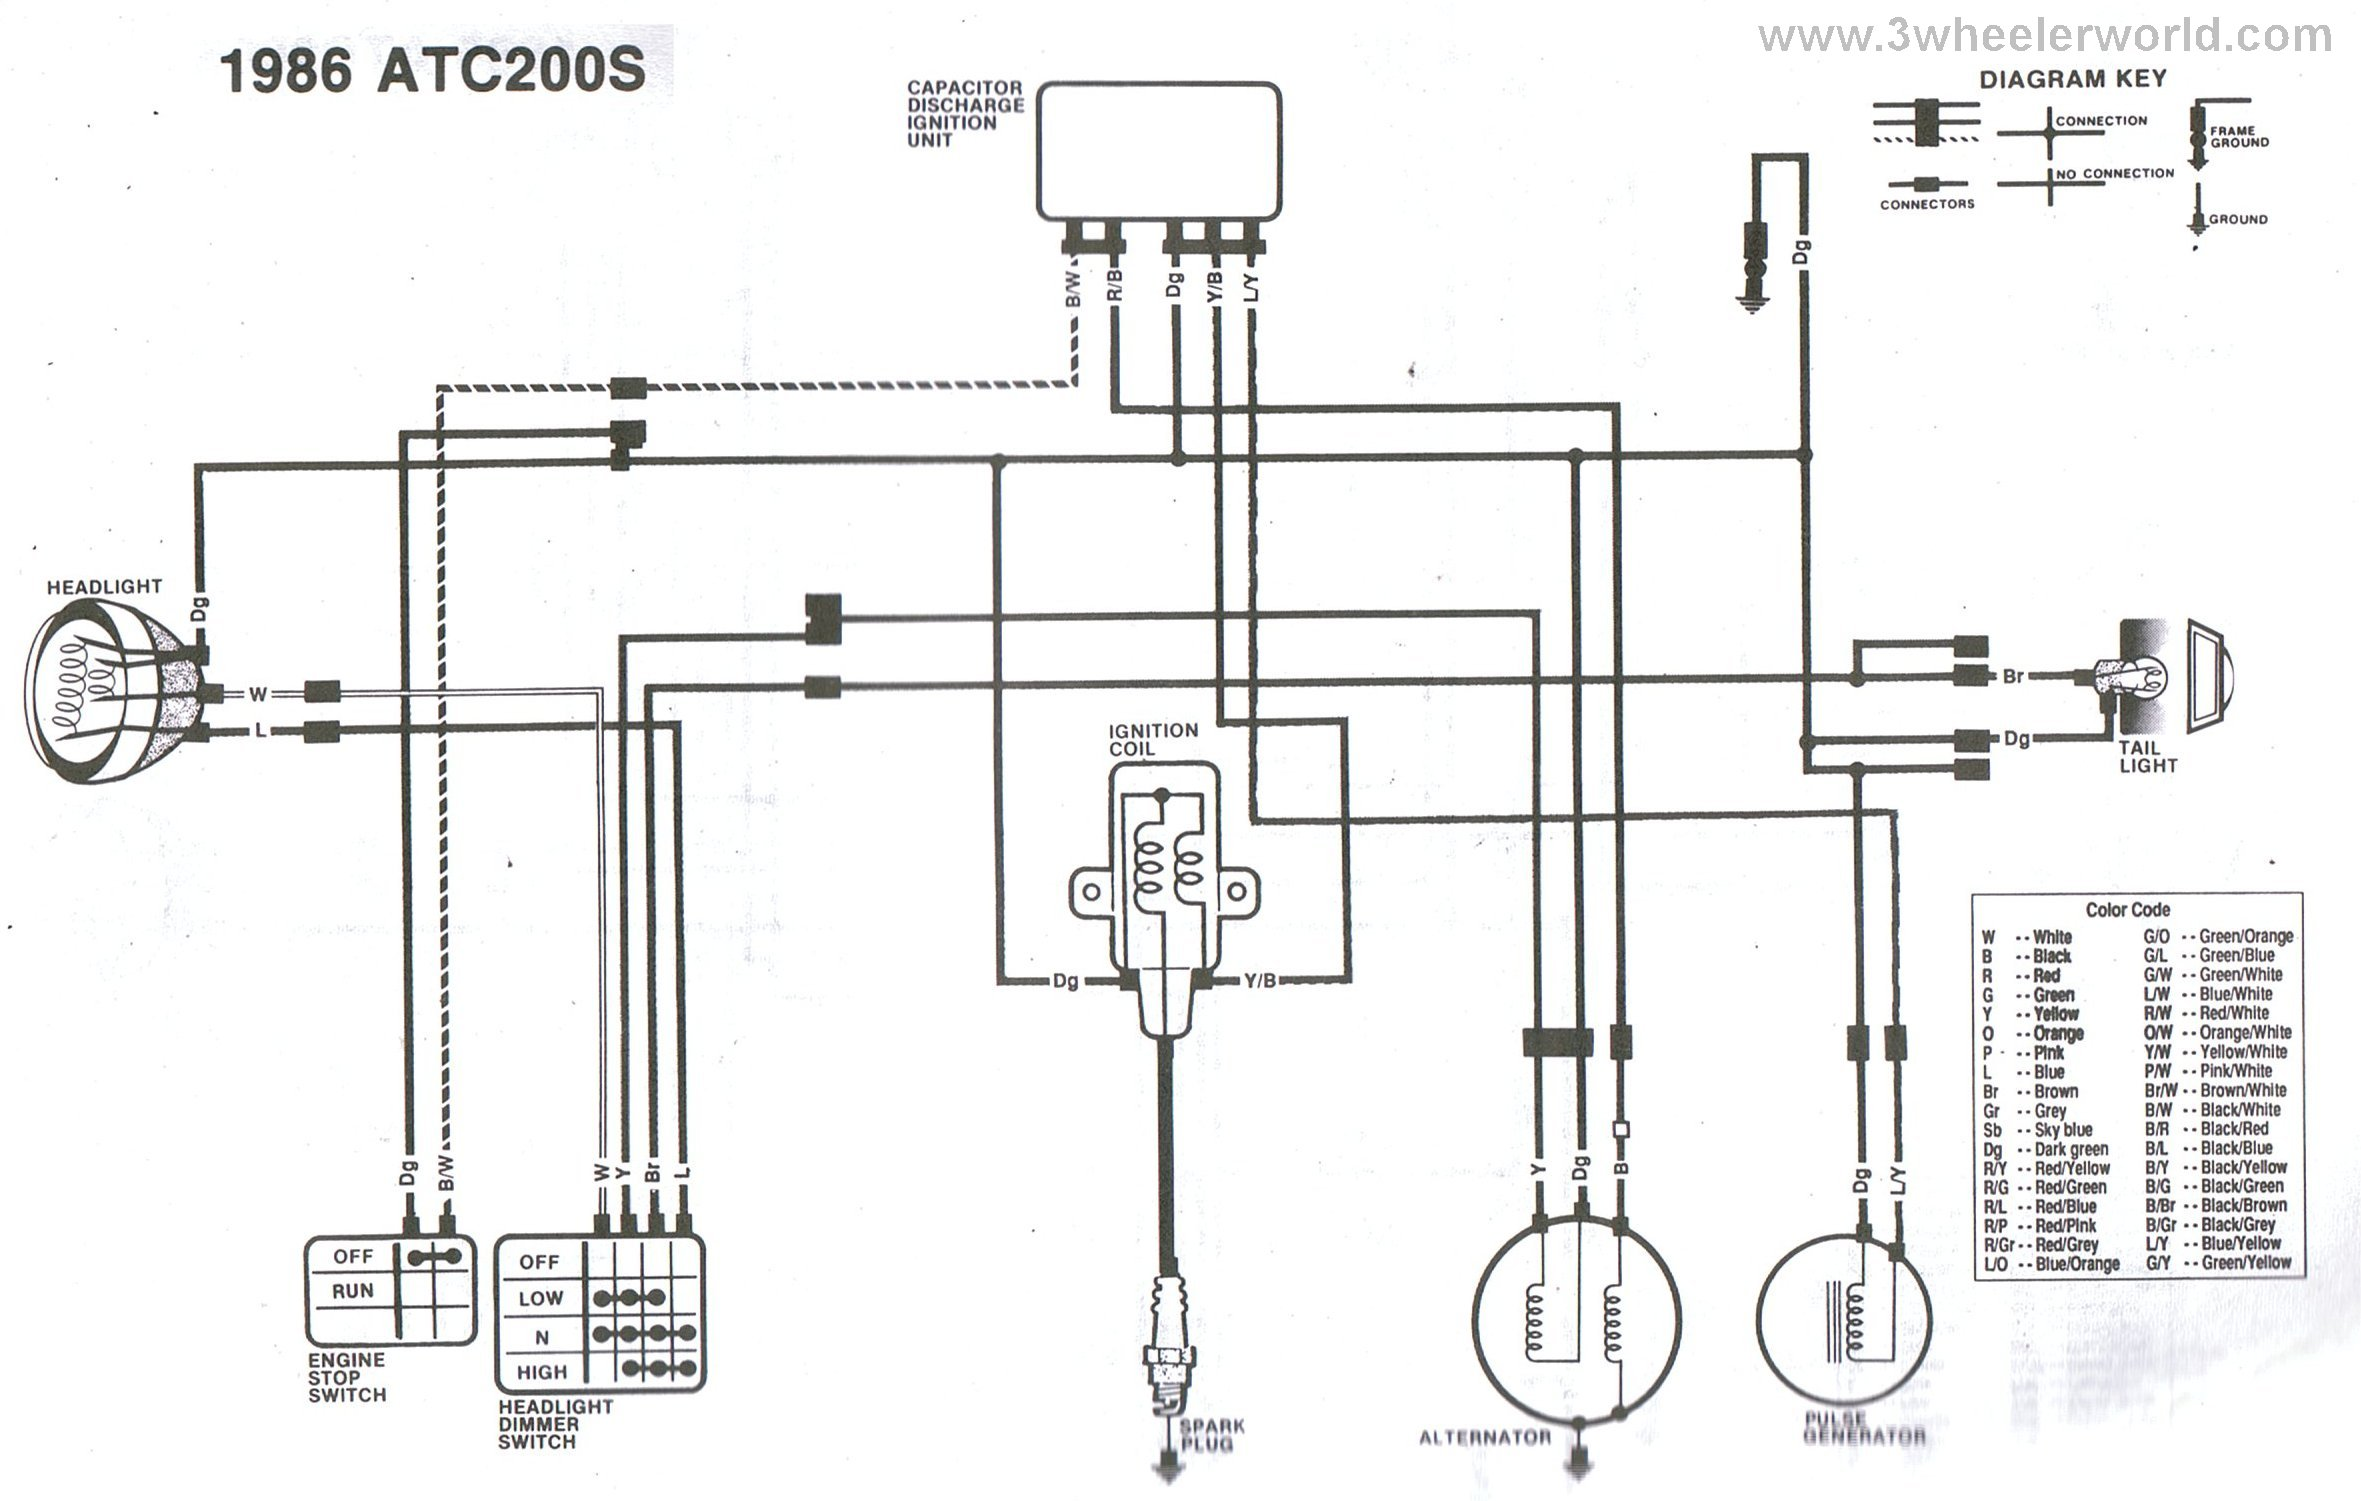 ATC200Sx86 100 [ wiring diagram suzuki quadrunner ] patent us7522213 shock atc 70 wiring diagram at sewacar.co